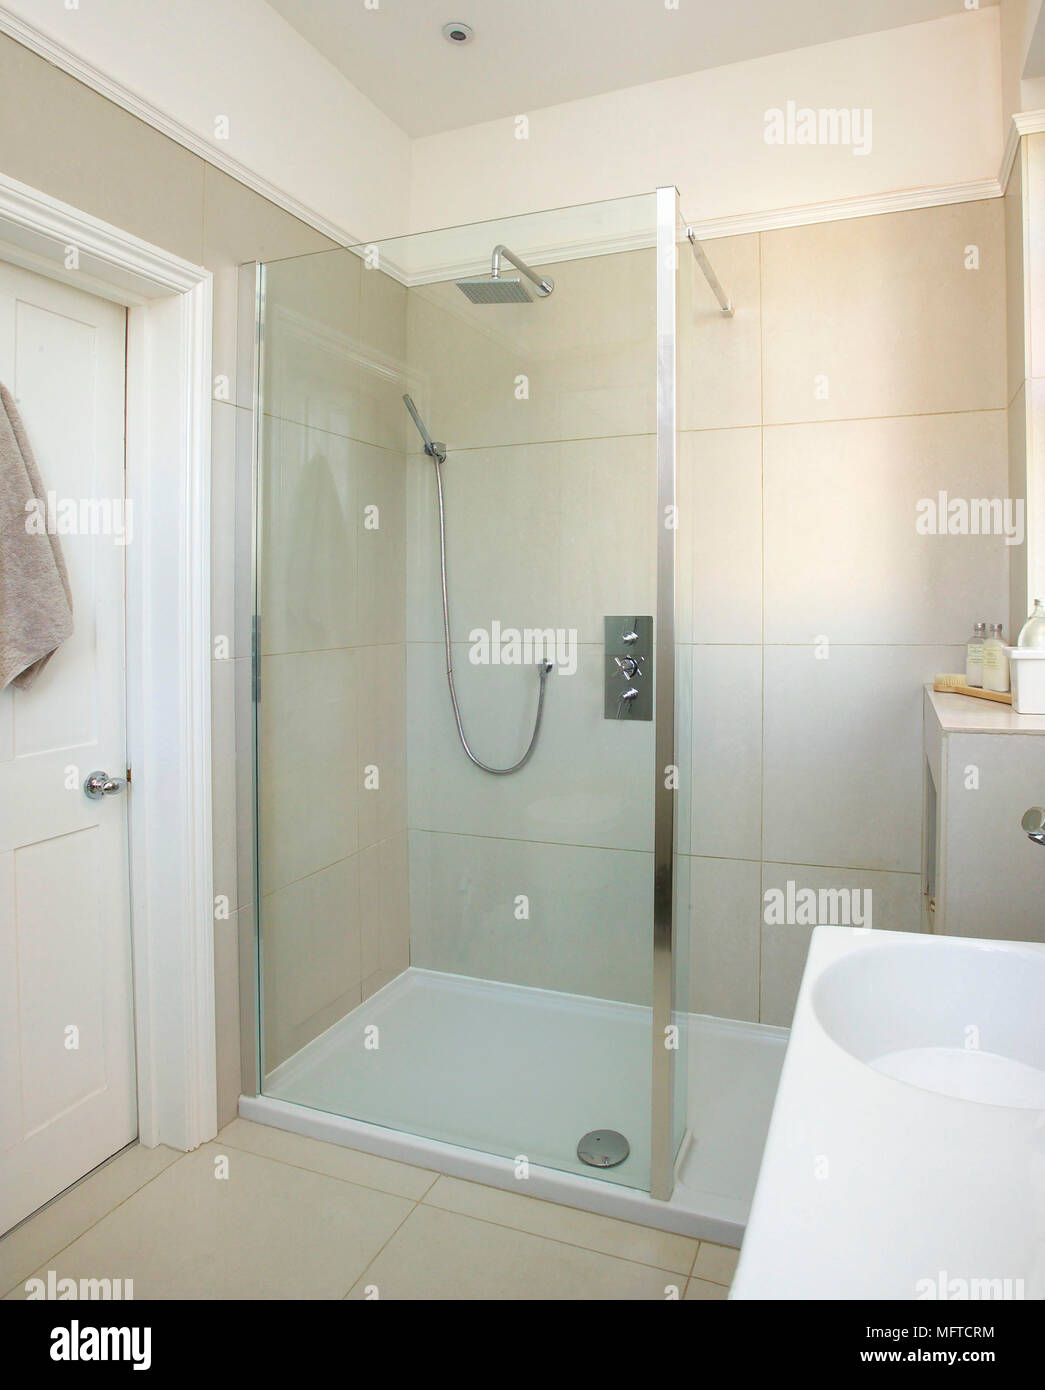 Shower cubicle in modern bathroom Stock Photo: 181860440 - Alamy